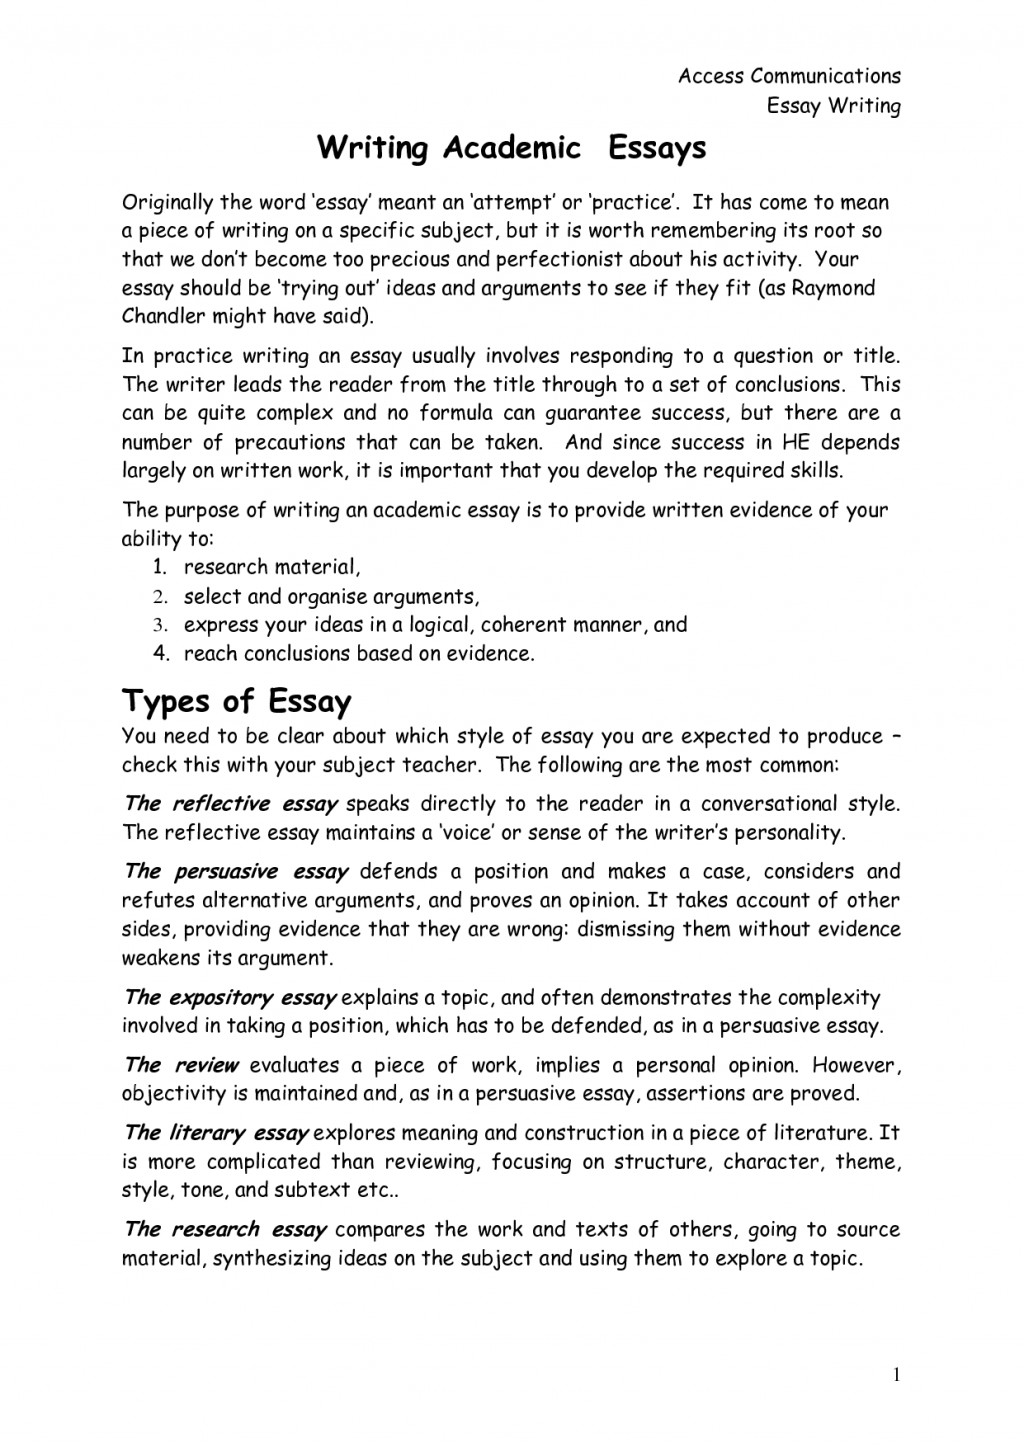 019 Write My Essay For Me Example Surprising Me.org Free Online Uk Large